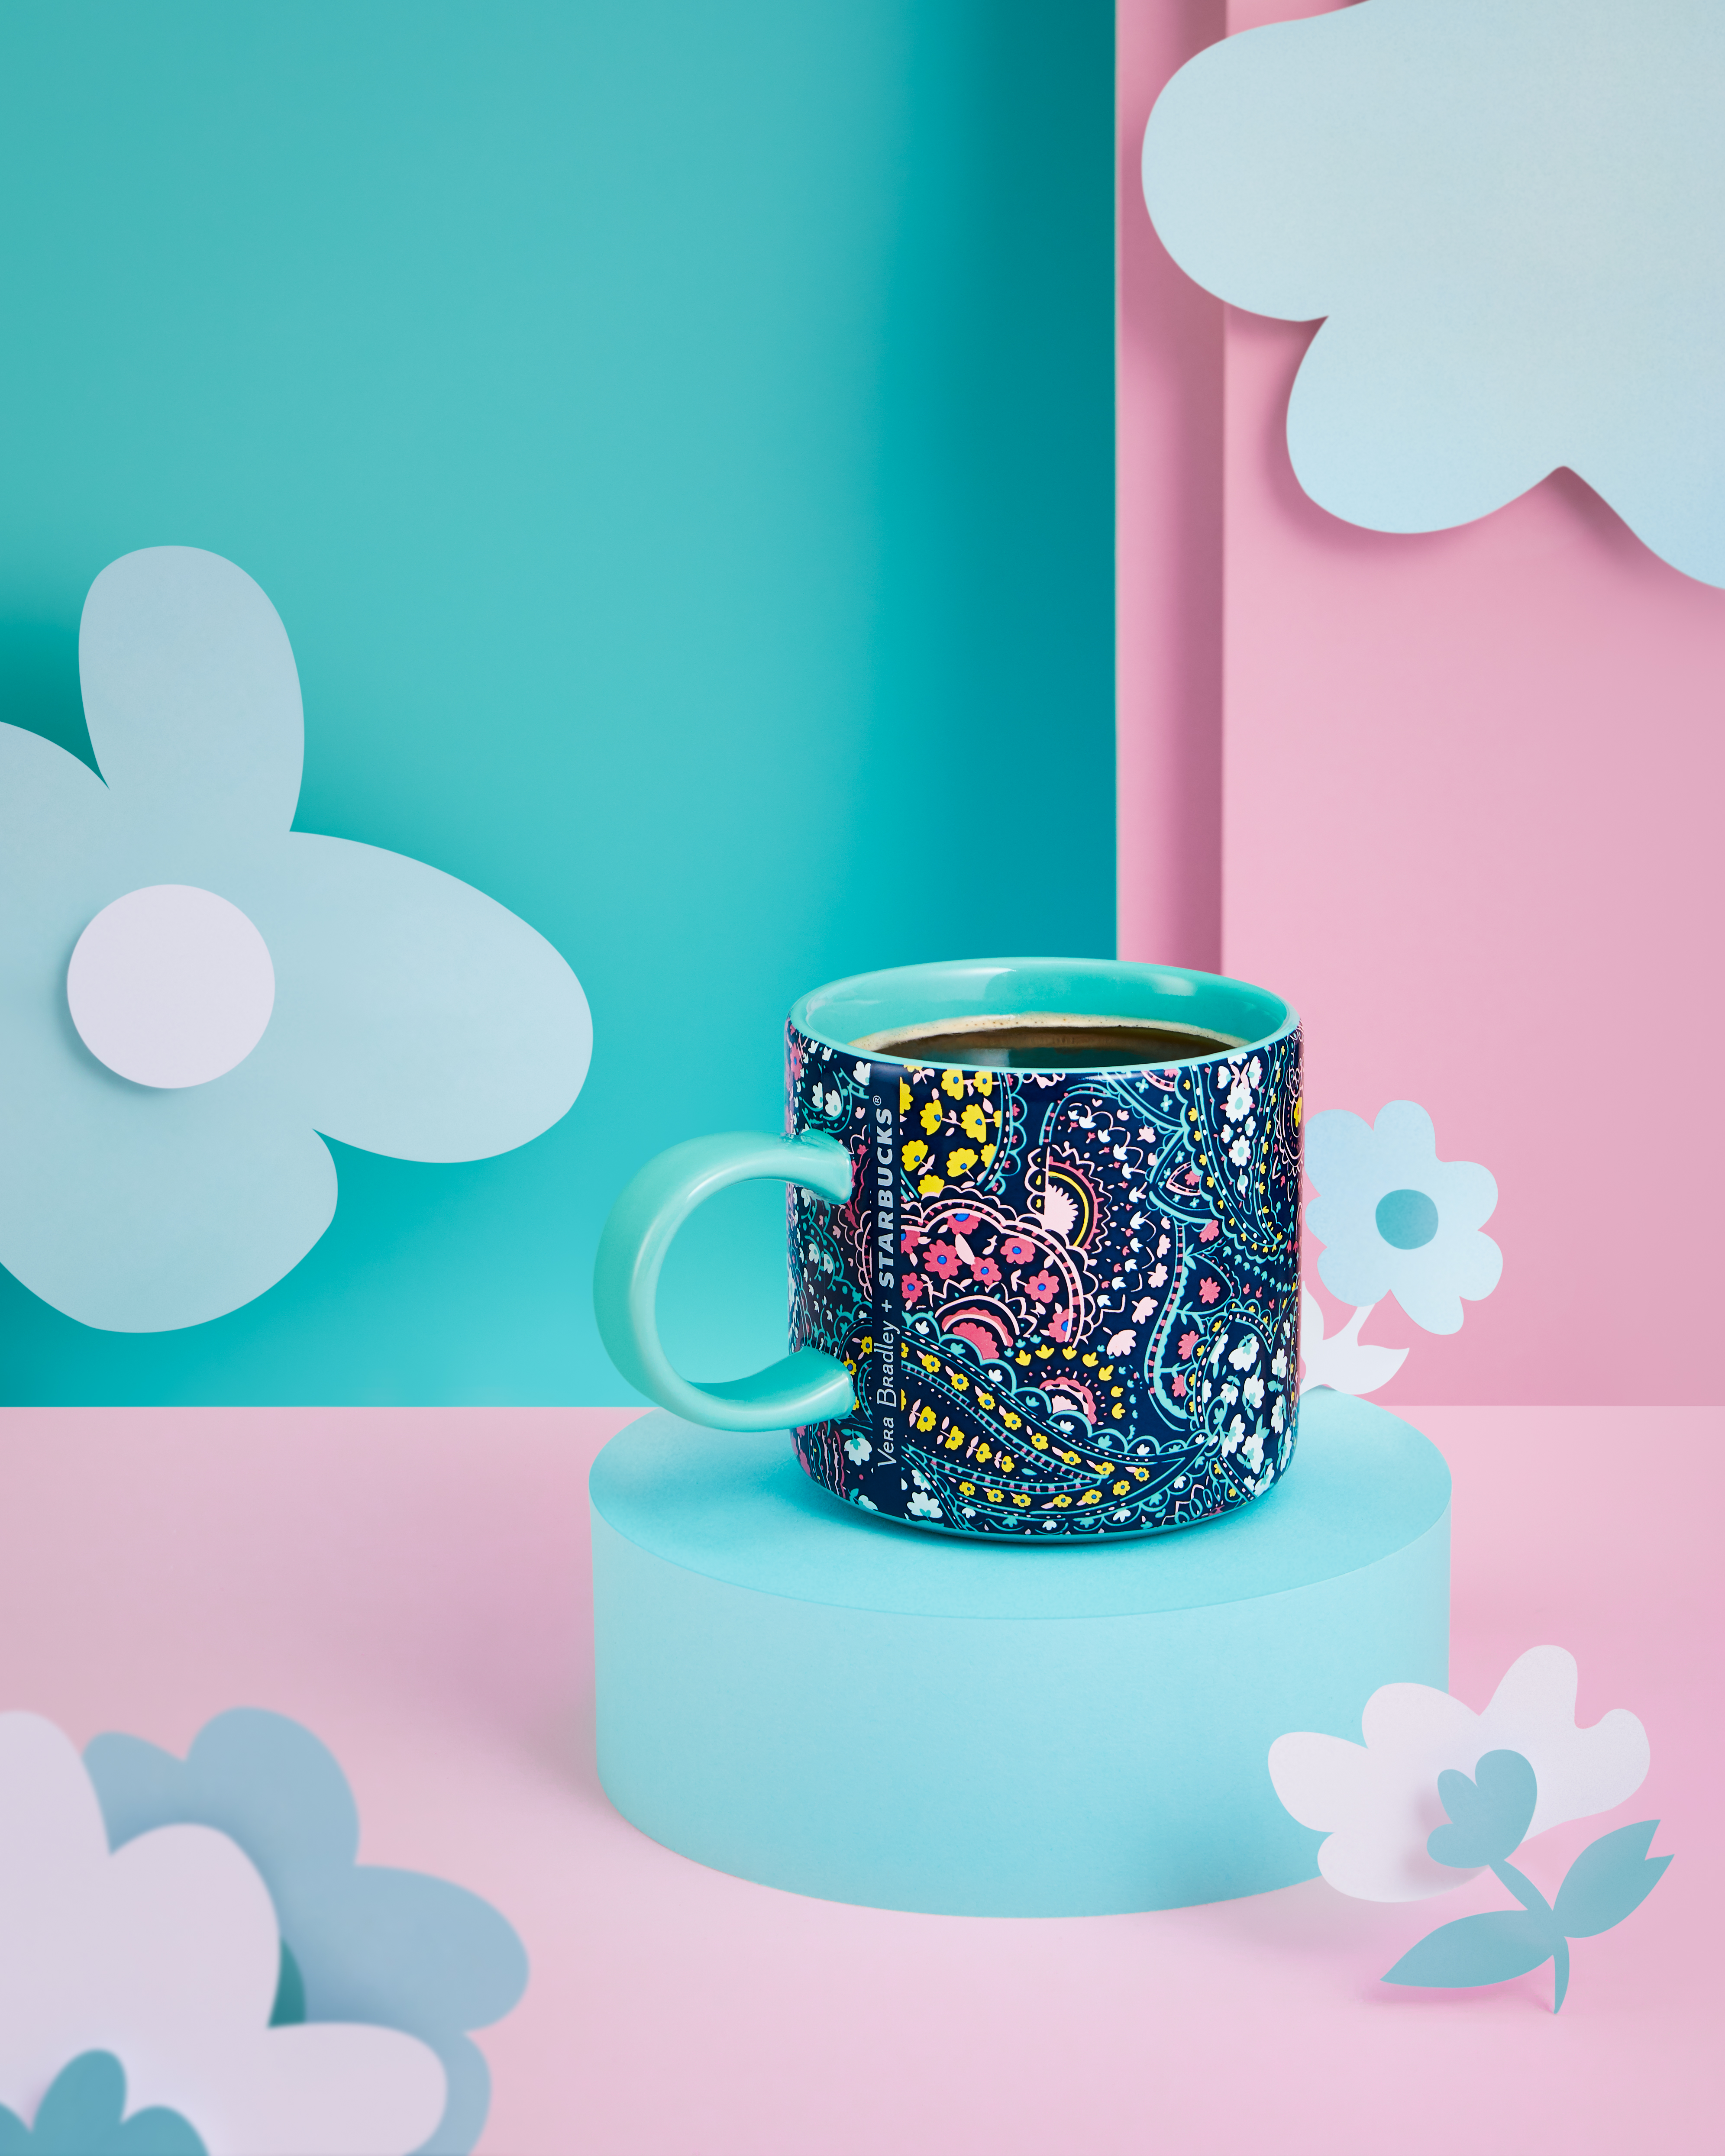 The Vera Bradley coffee mug for Starbucks in Asia.